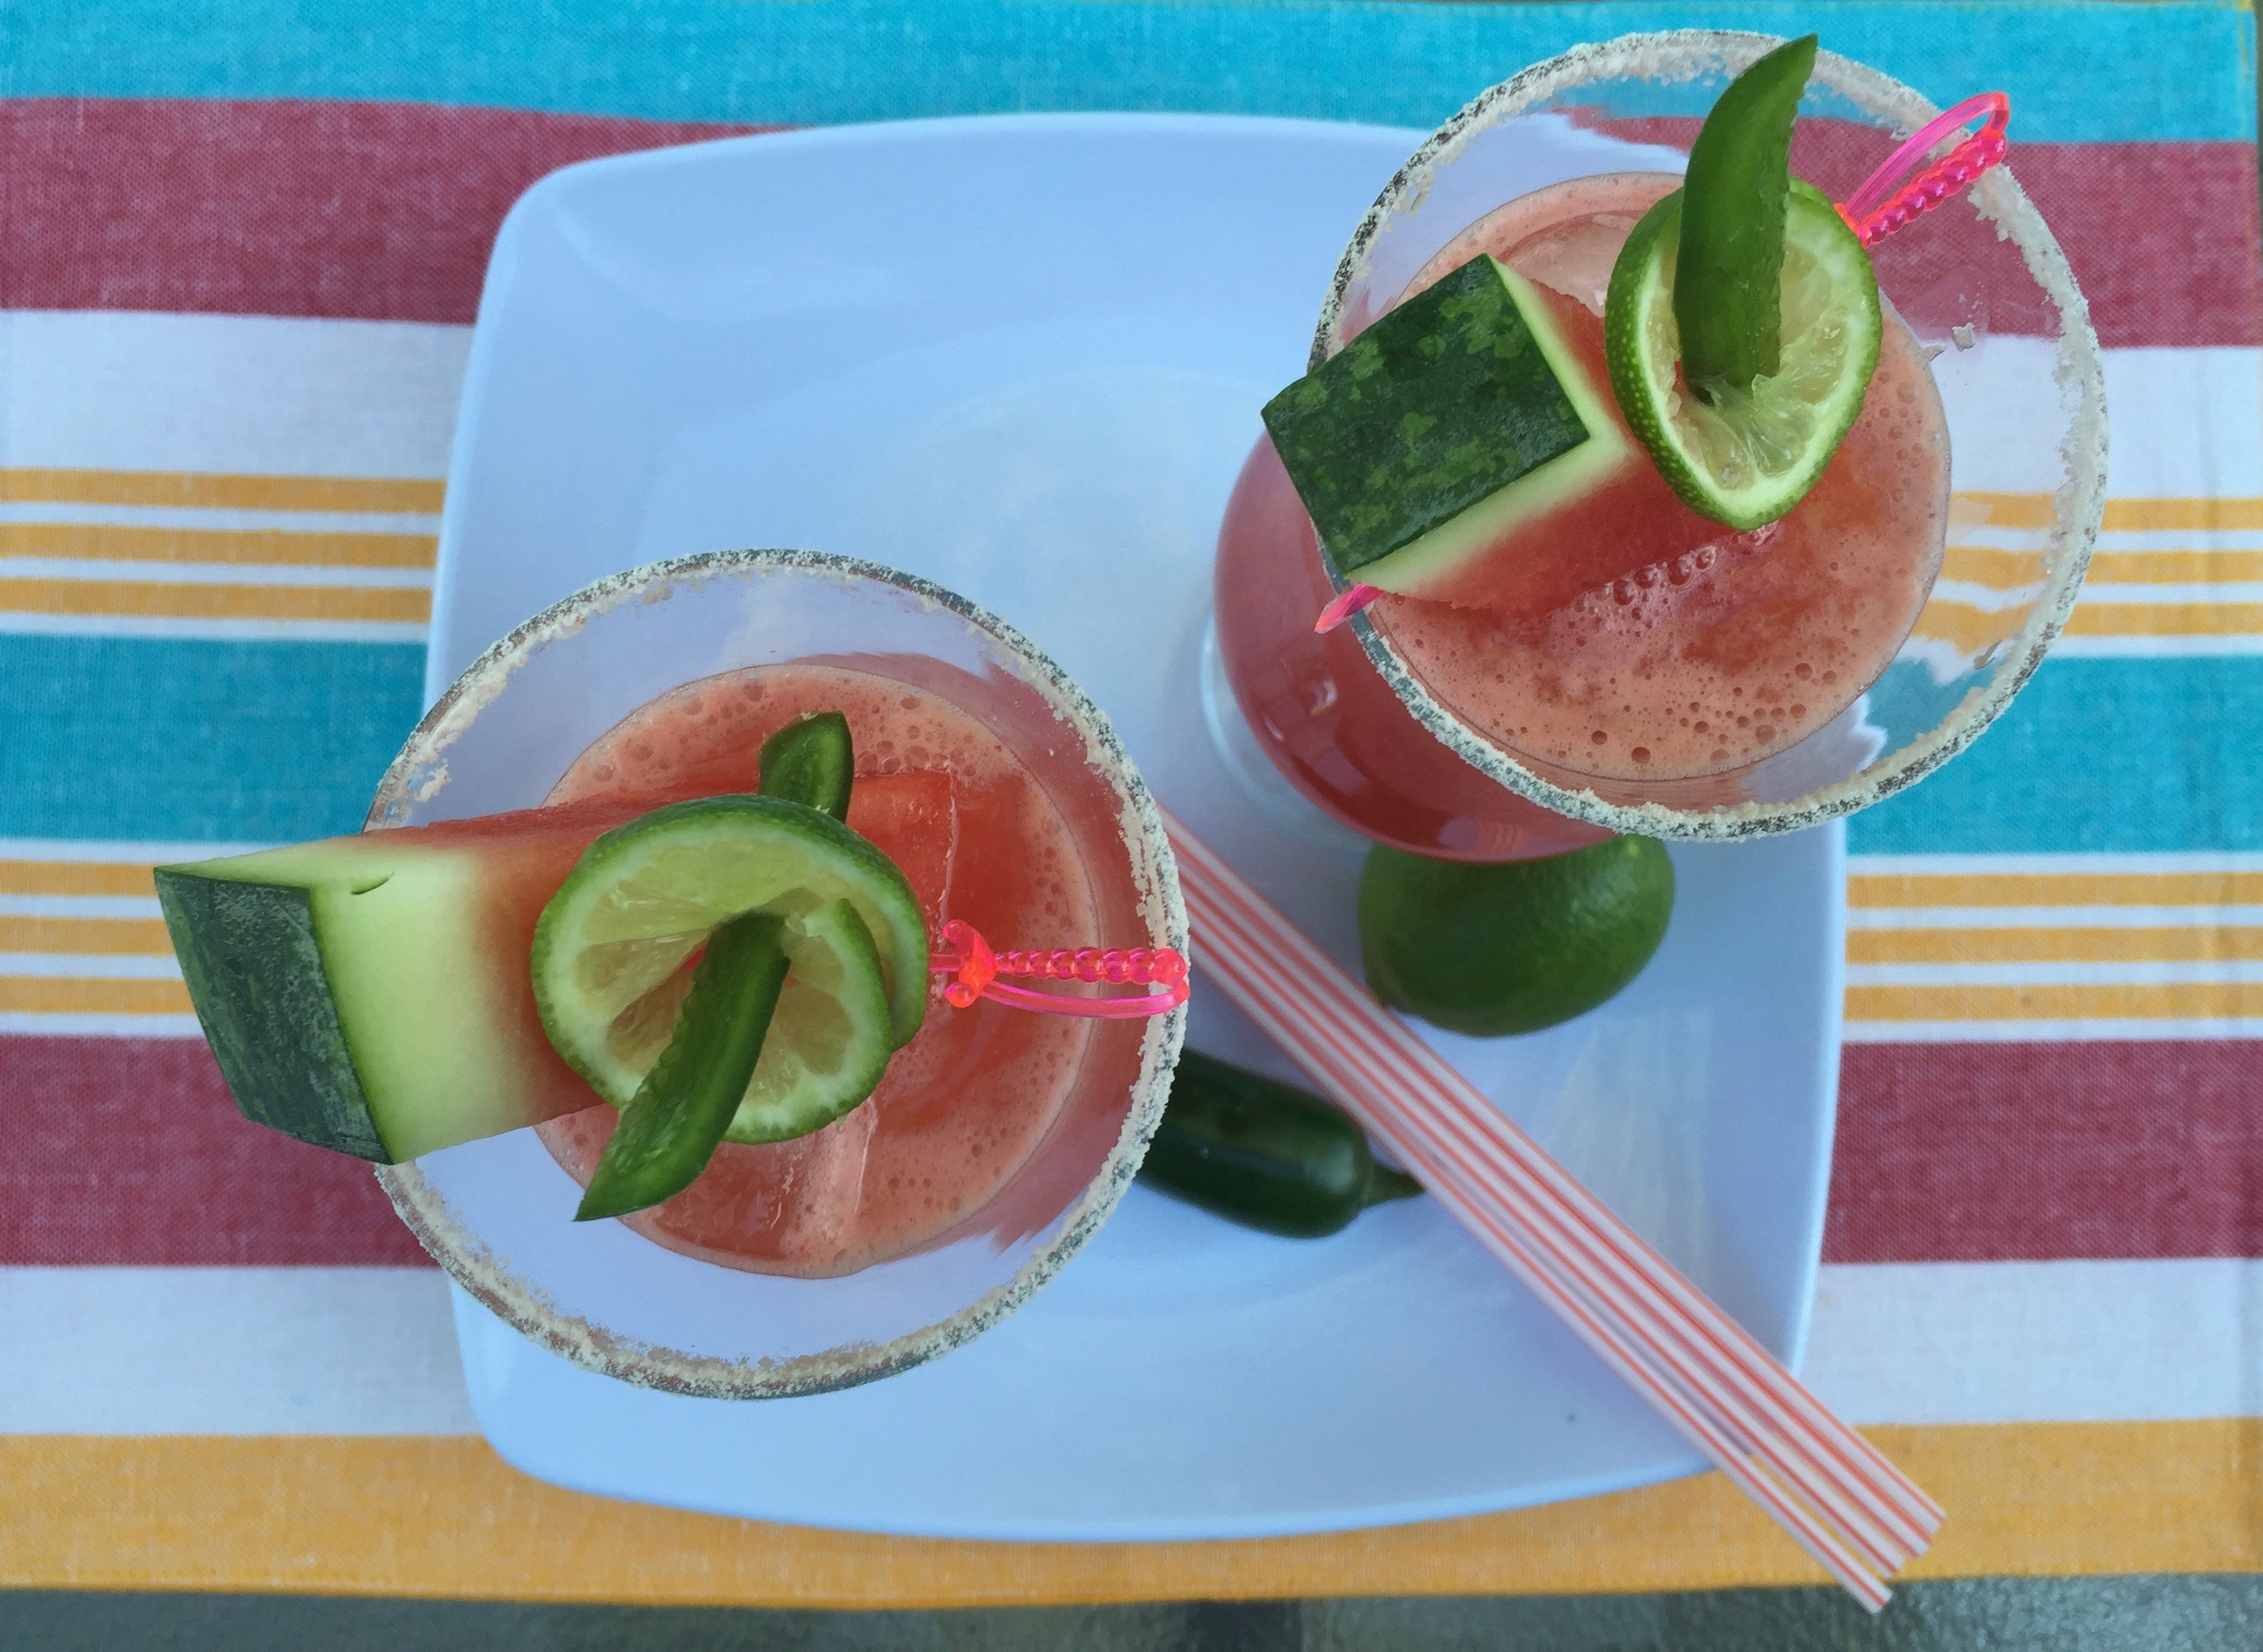 Jalapeno-infused tequila provides heat to sweet watermelon blend for a refreshing summer bevvy